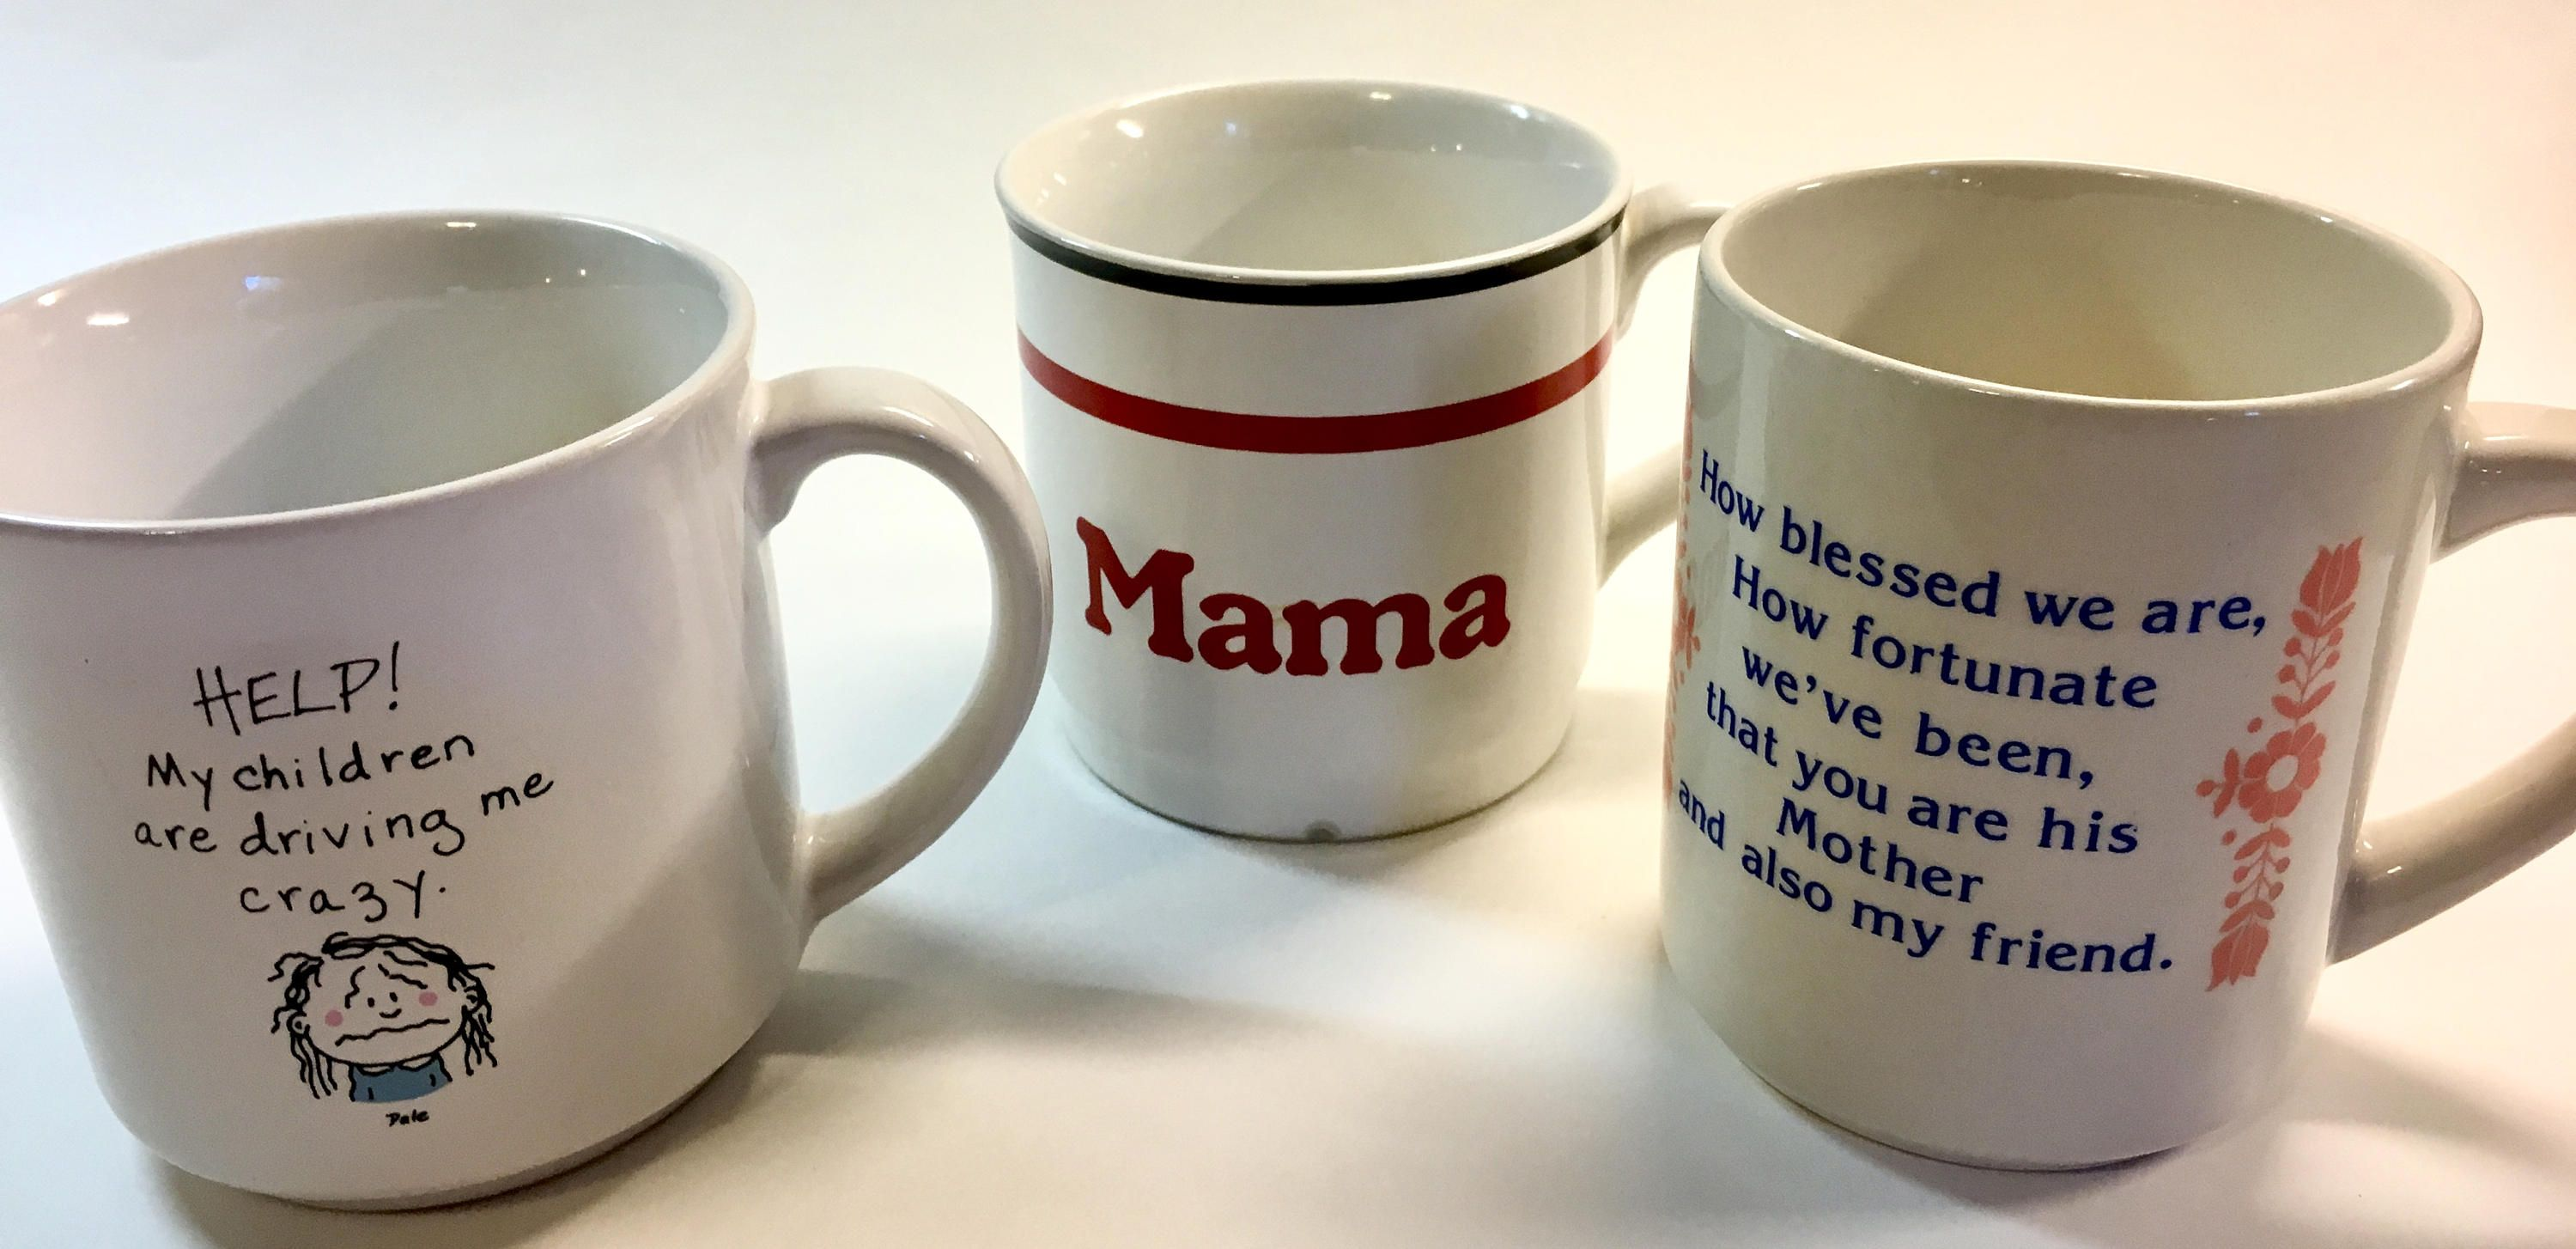 Vintage Retro Coffee Mug Gift For Mom Sweetly Retro Coffee Mug